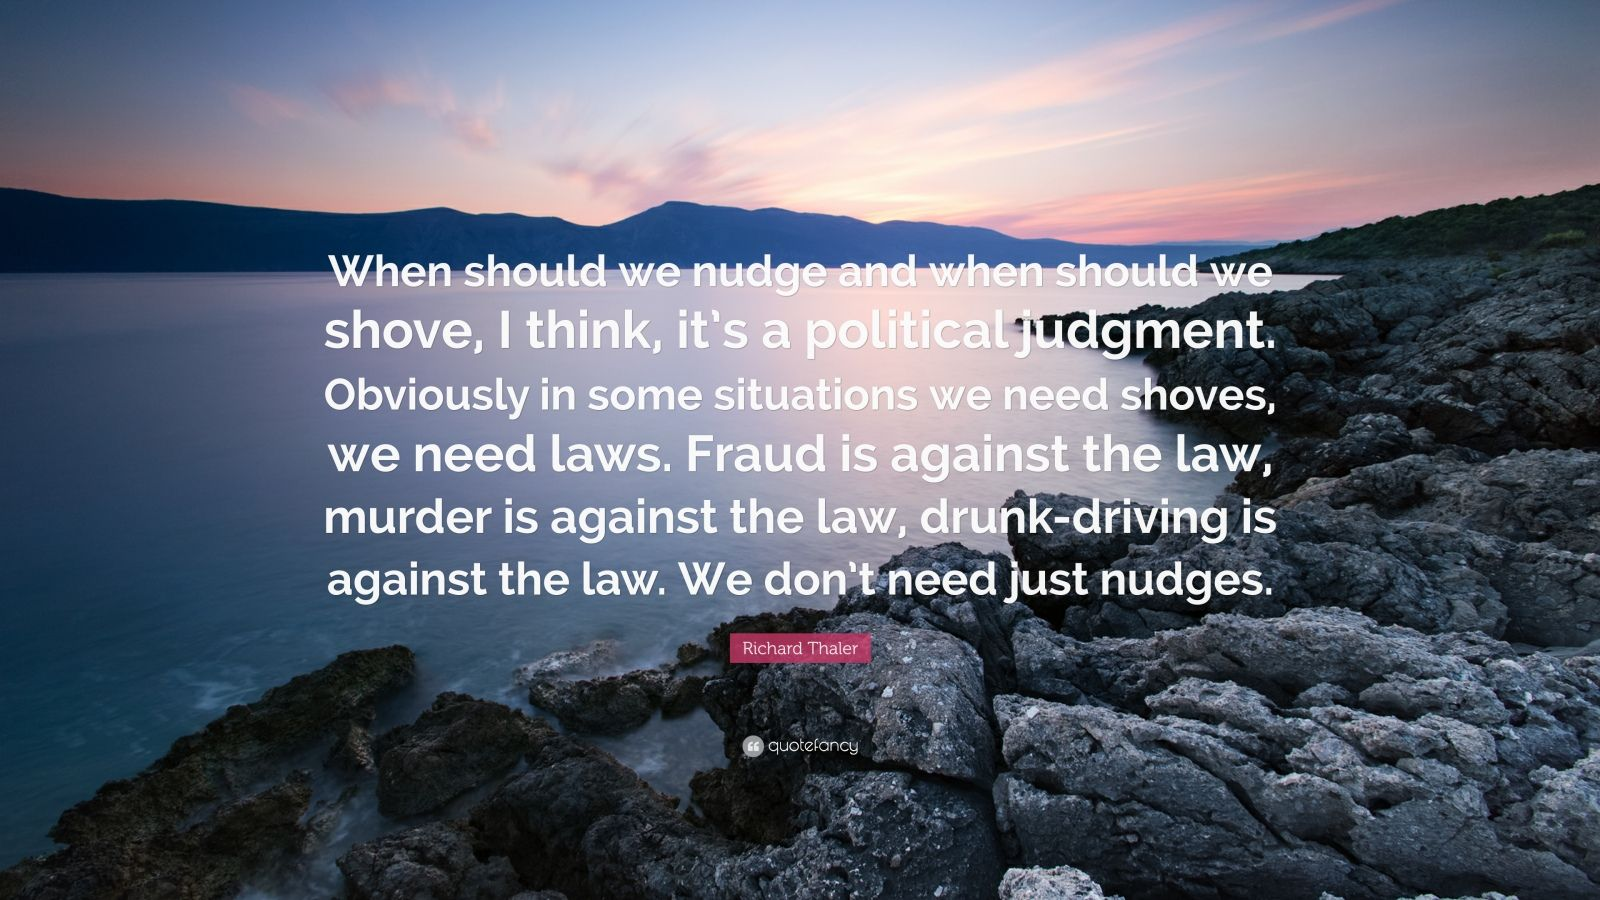 """Richard Thaler Quote: """"When should we nudge and when should we shove, I think, it's a political judgment. Obviously in some situations we need shoves, we need laws. Fraud is against the law, murder is against the law, drunk-driving is against the law. We don't need just nudges."""""""